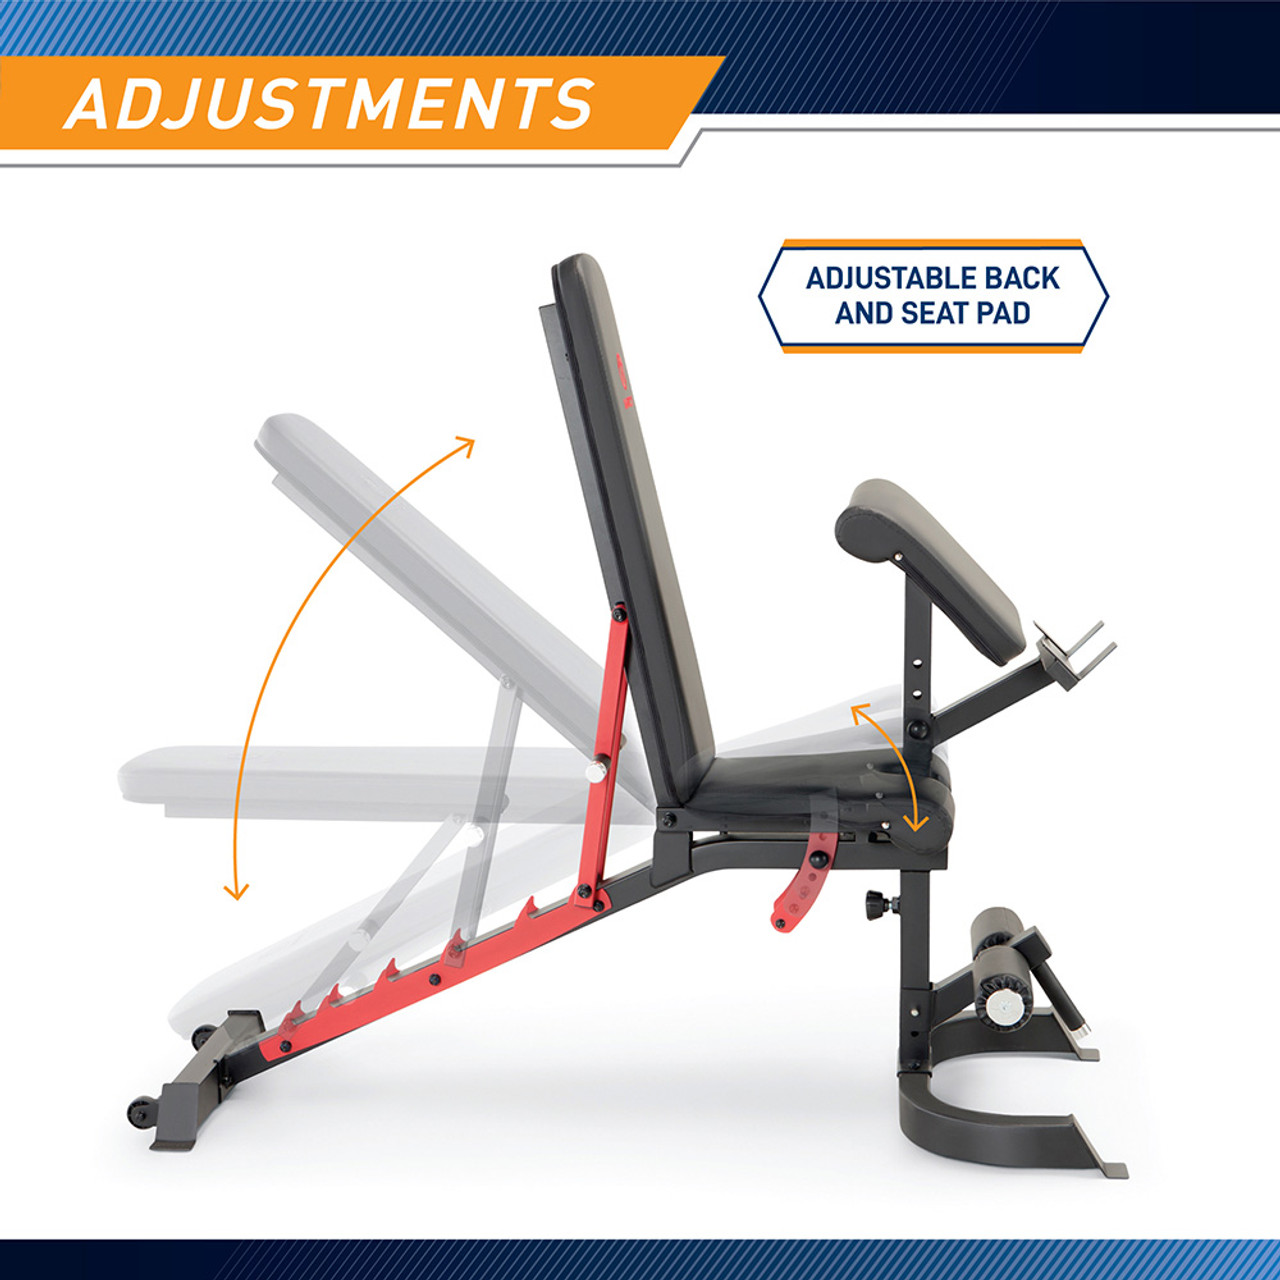 The included bench adjusts at the back pad and seat pad to diversify your workout. In addition, the preacher curl pad and curl bar rest are removable